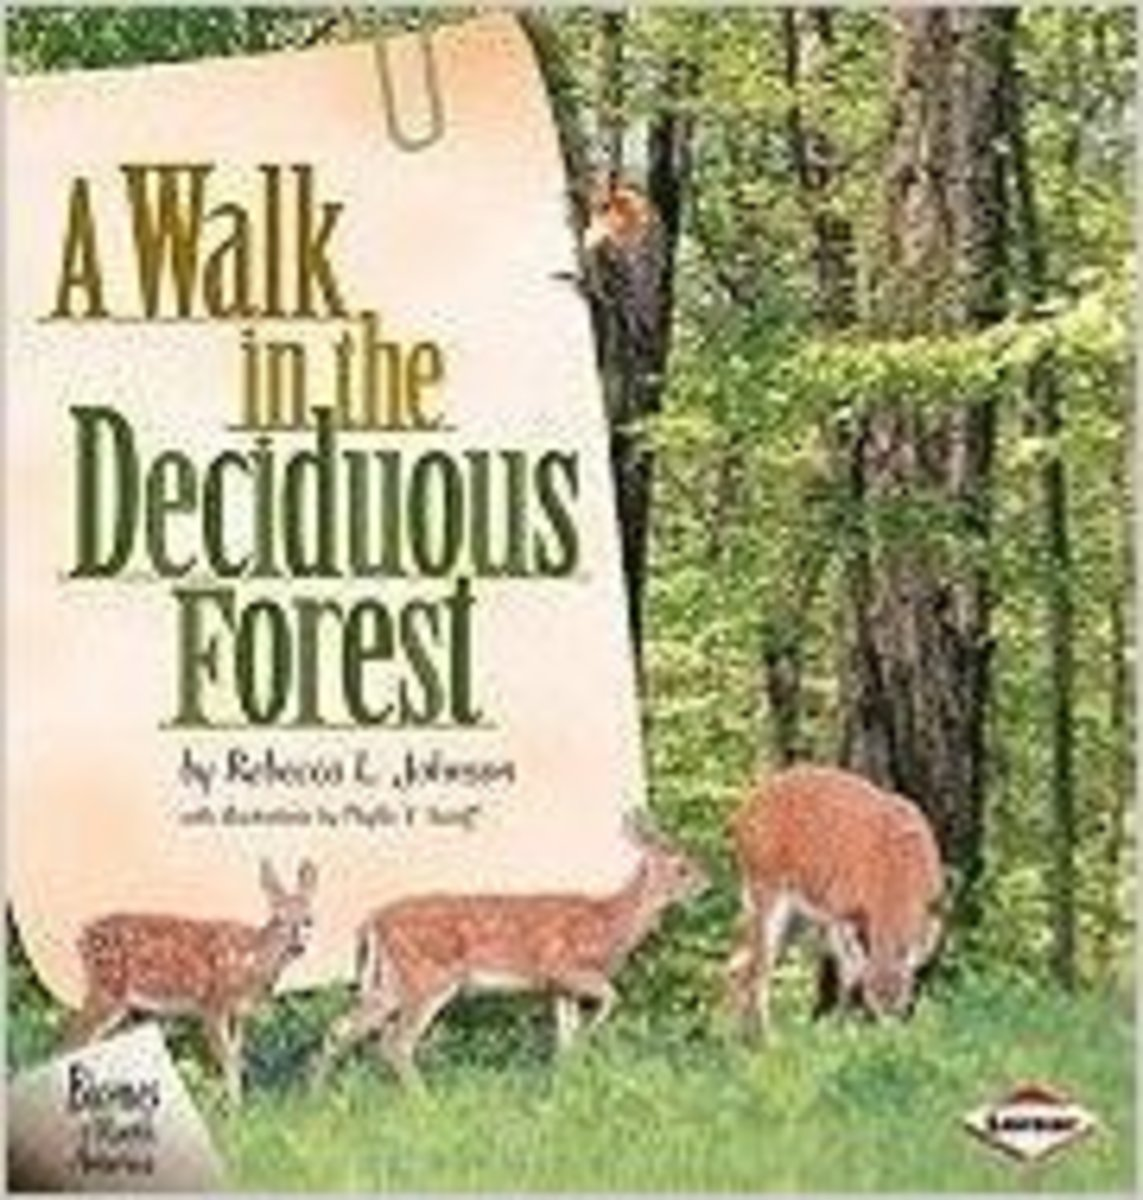 A Walk in the Deciduous Forest by Rebecca L. Johnson has nice photographs of deciduous forests -- and just enough text to keep children's interest if you have extra time and would like to read it.